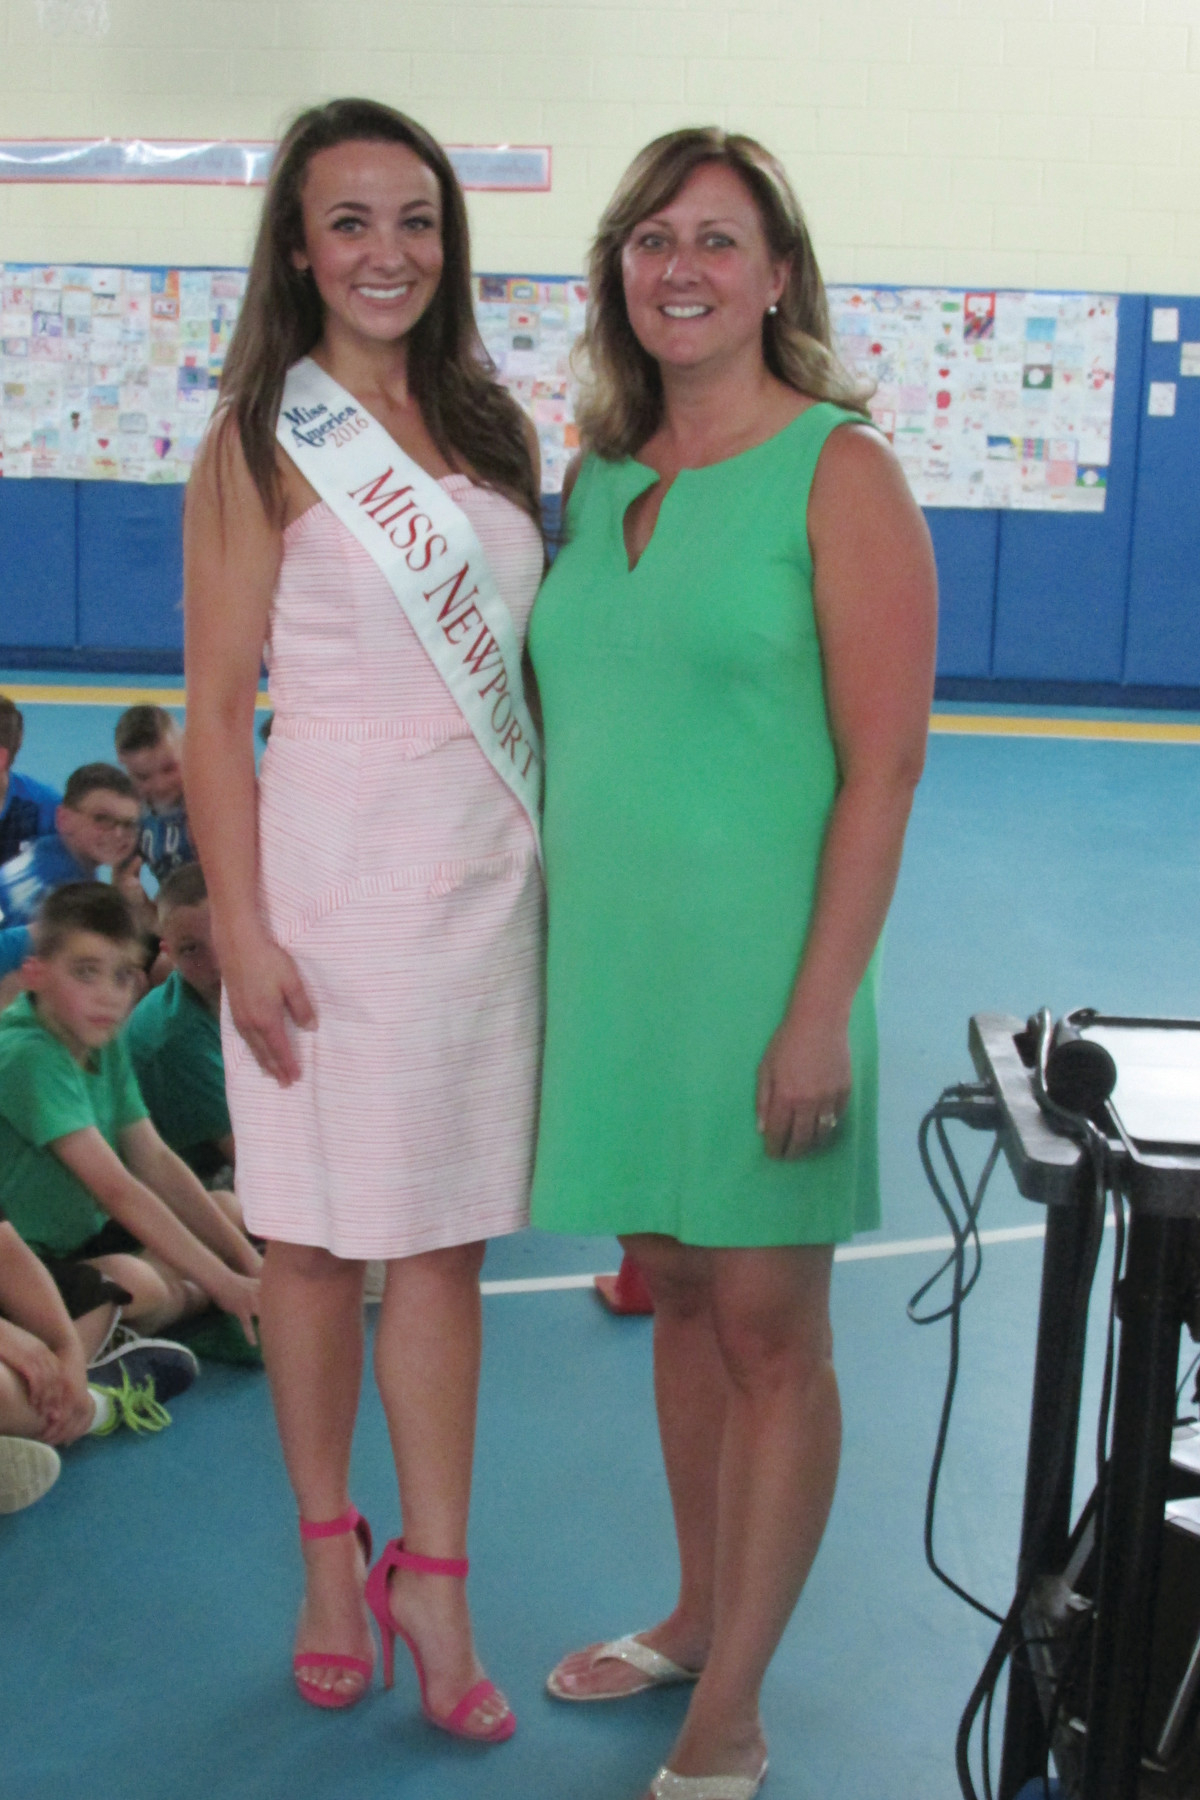 TEAM EFFORT: Nicolette Peloquin, Miss Newport Harbor, is joined by Susan Parillo, a health and physical education teacher who coordinated Healthy Kids Day.